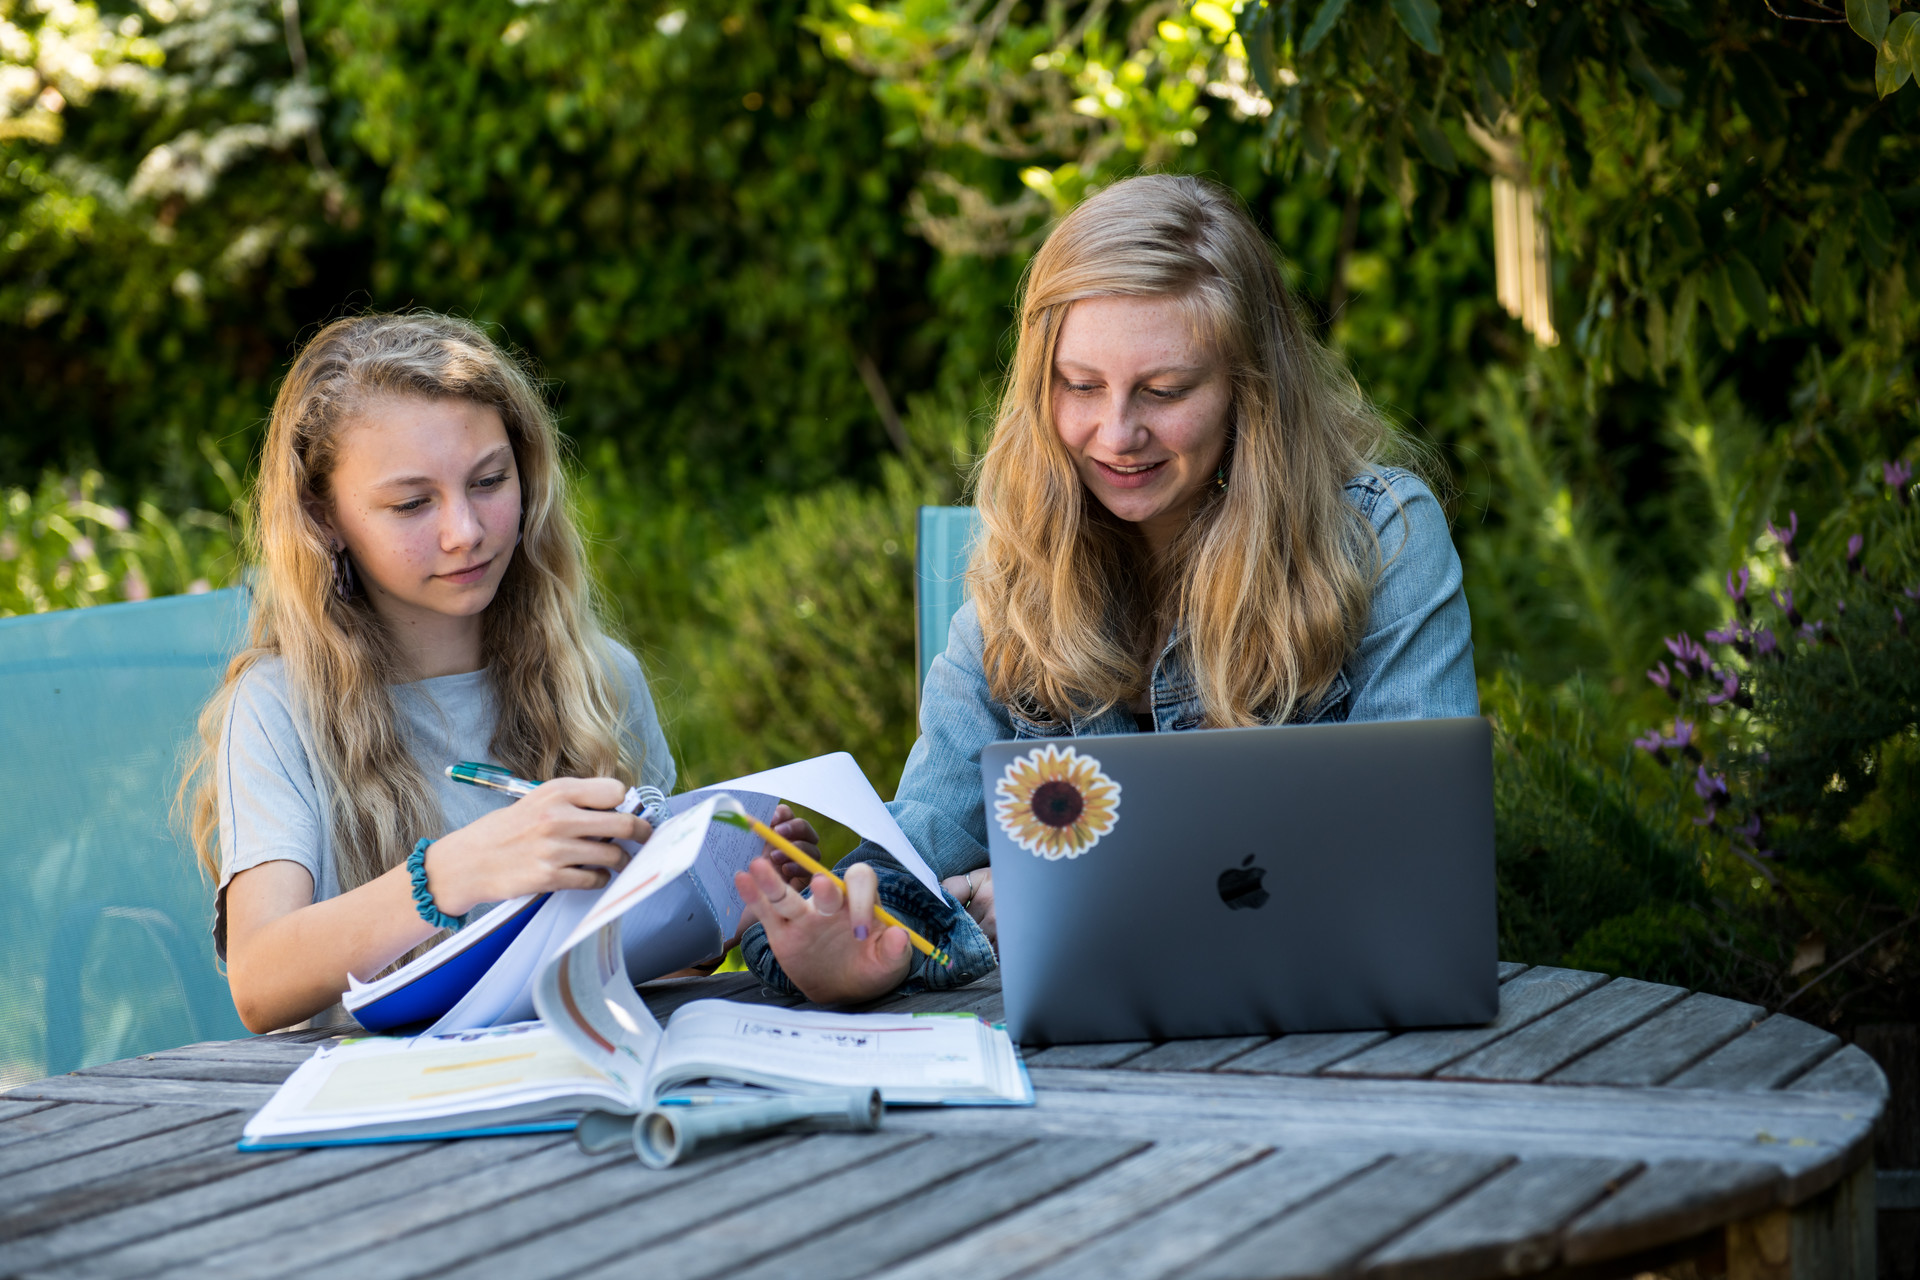 Genevieve Schweitzer and her sister, Julia, study in their backyard.